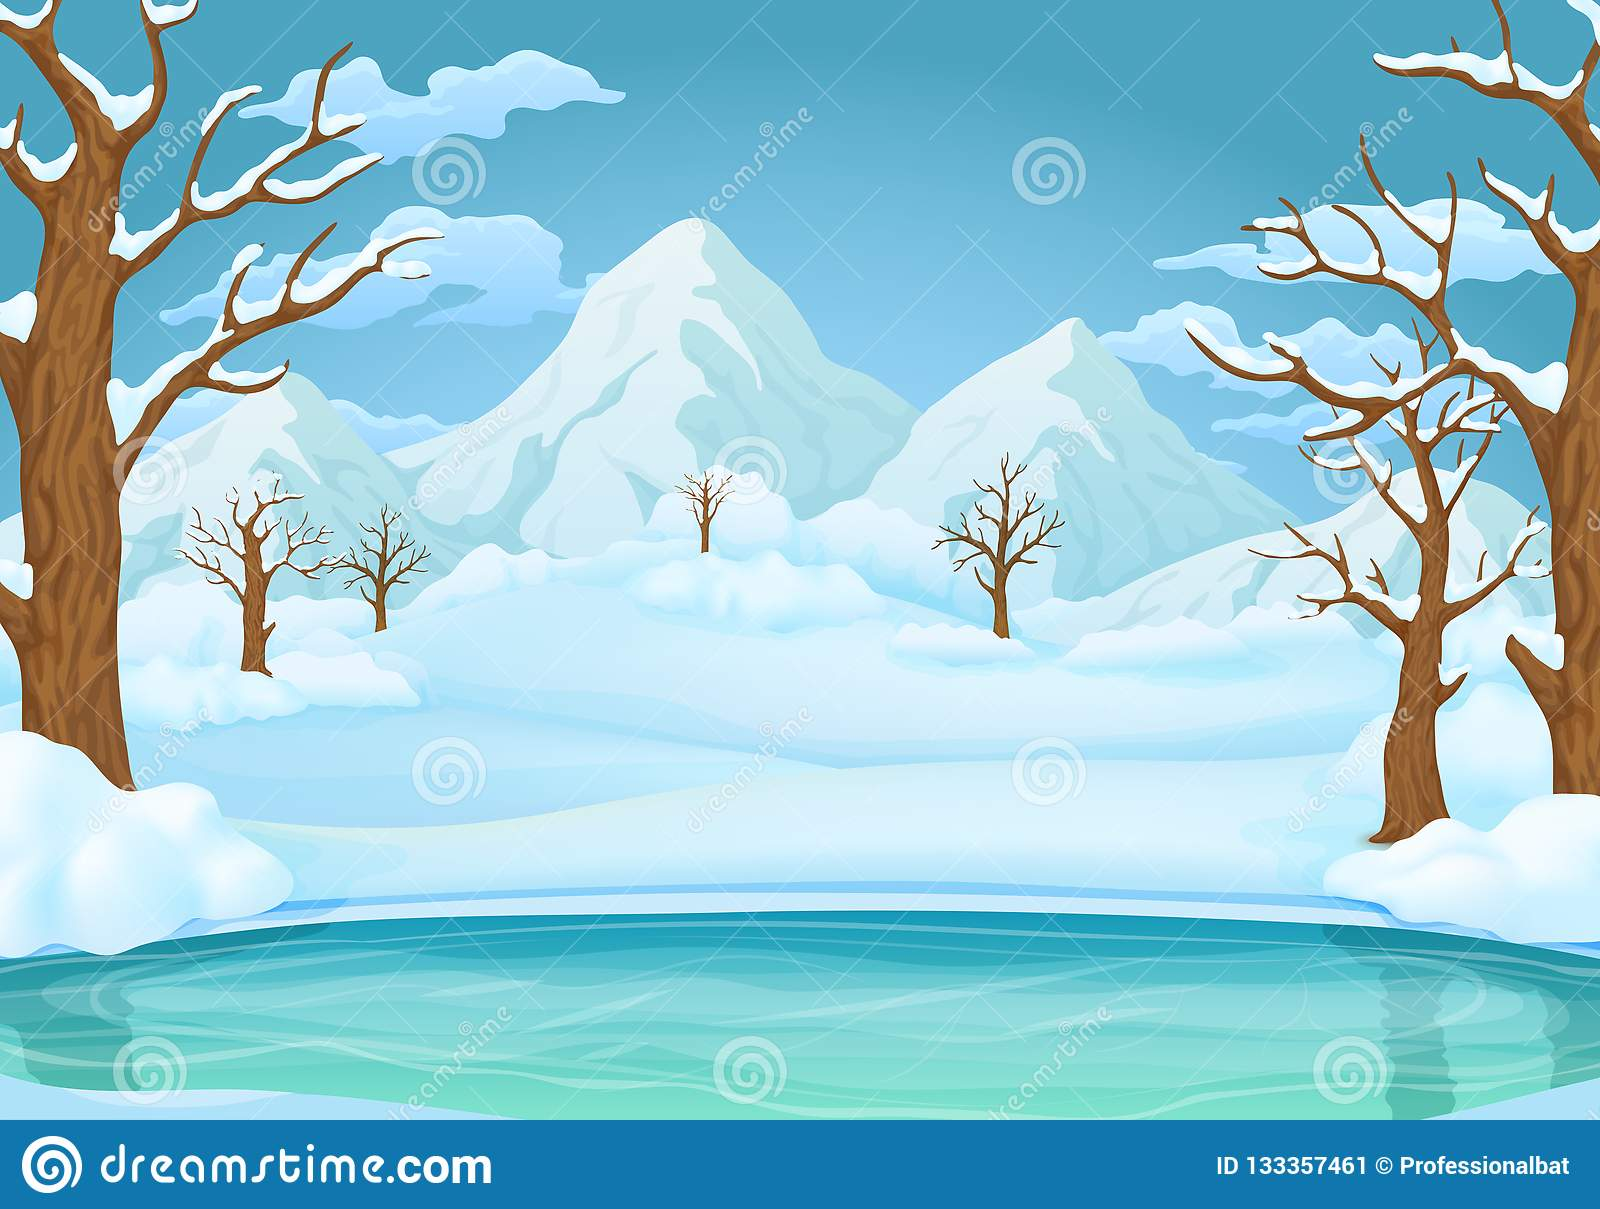 Winter day background. Frozen lake or river with snow covered trees and snowy mountains.